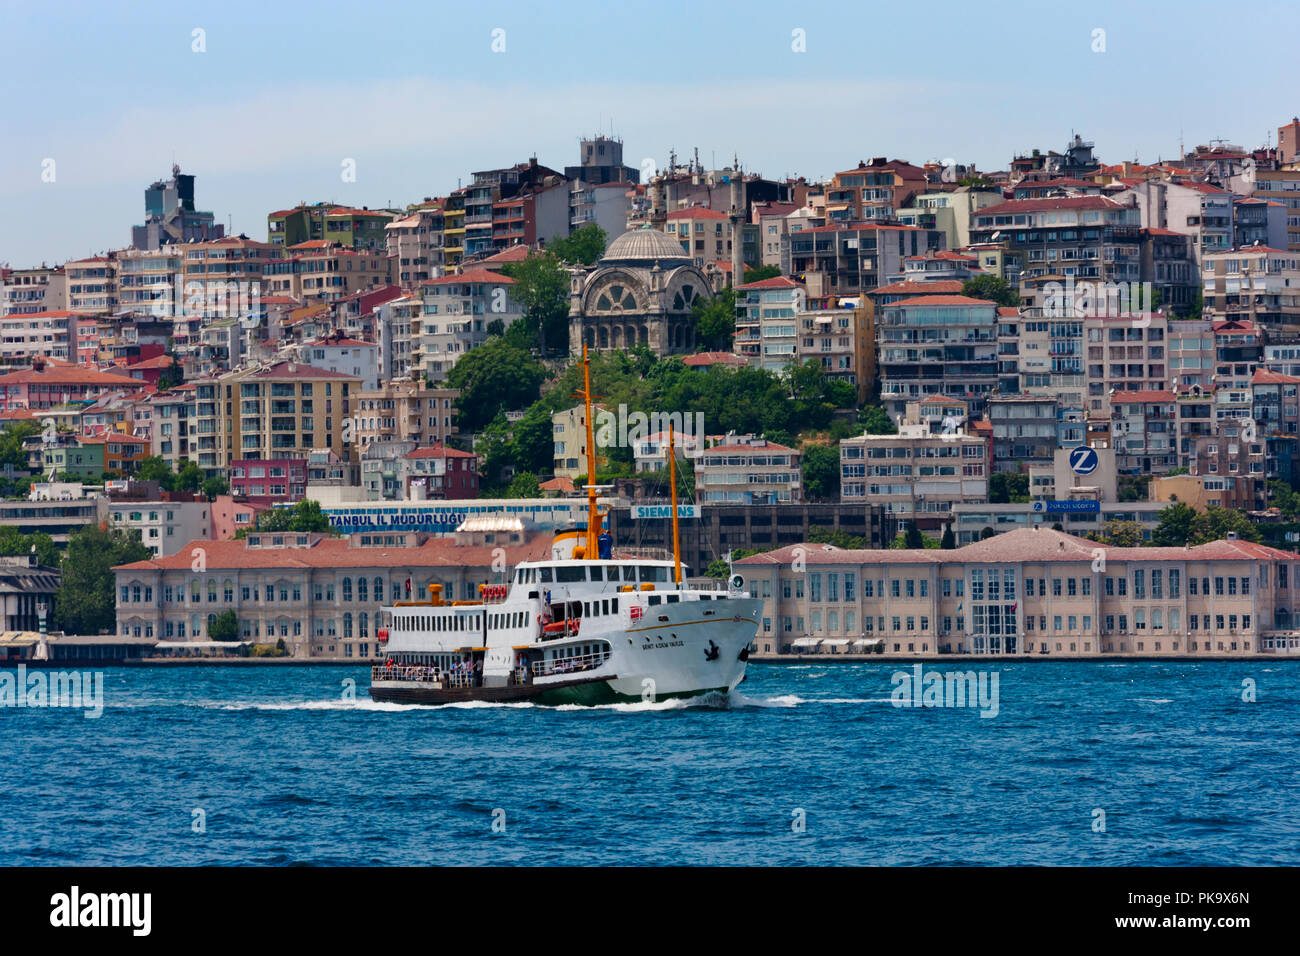 Houses along the waterfront on the European side, Golden Horn, Istanbul, Turkey - Stock Image